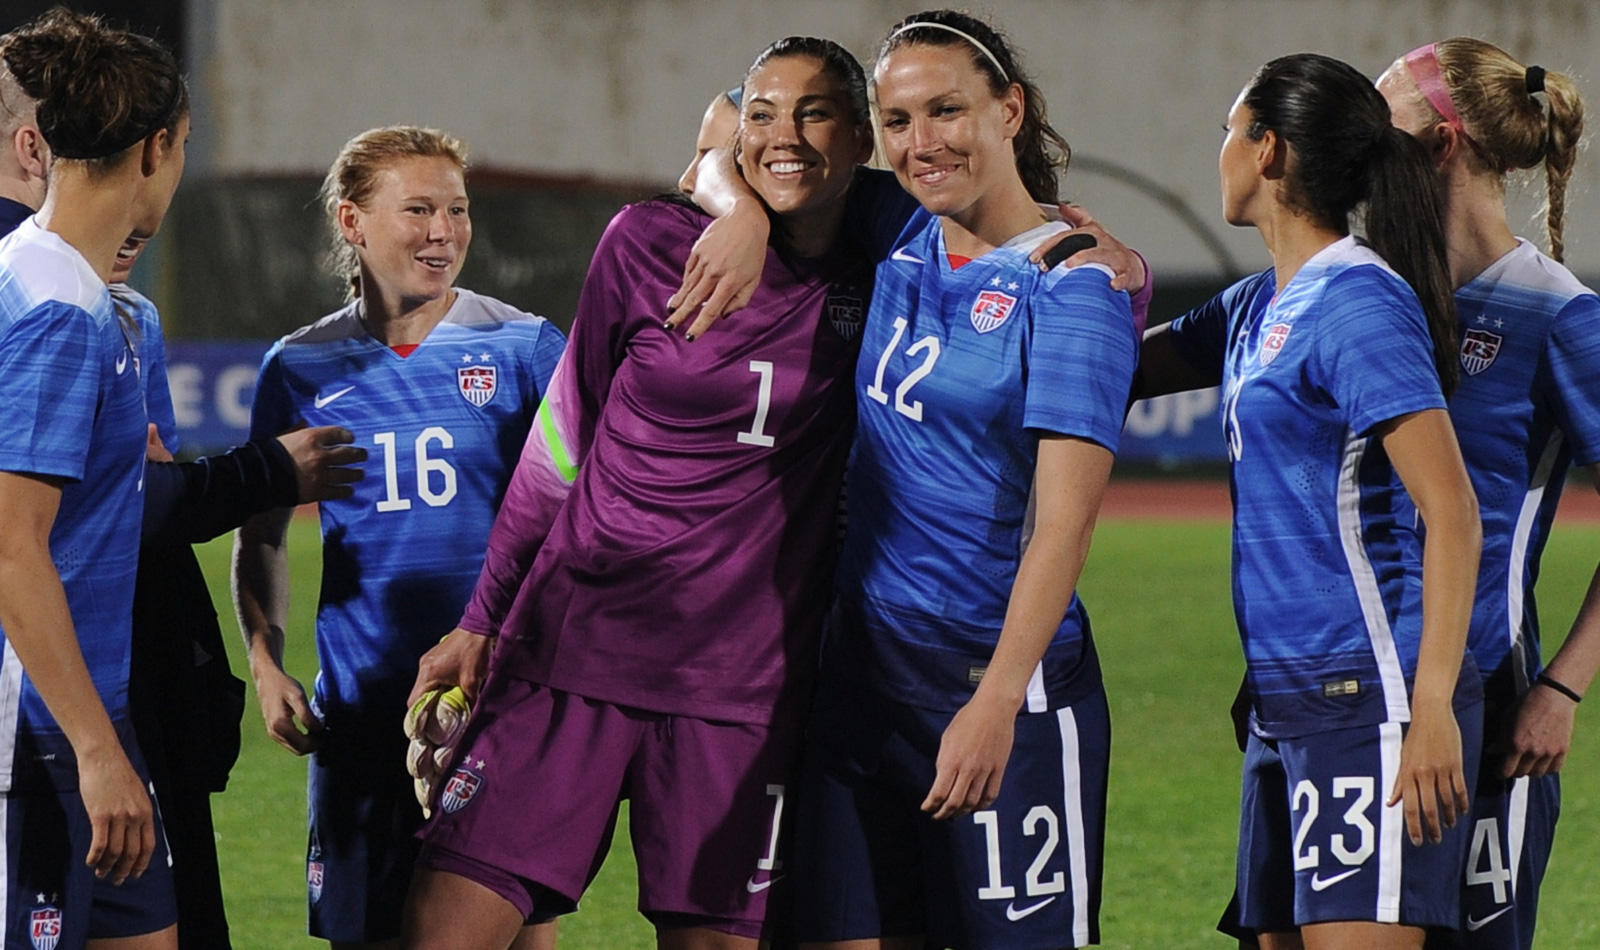 The USWNT opens the Algarve Cup with a 2-1 win over Norway, marking Hope Solo's return from a 30-day suspension with a come-from-behind victory.